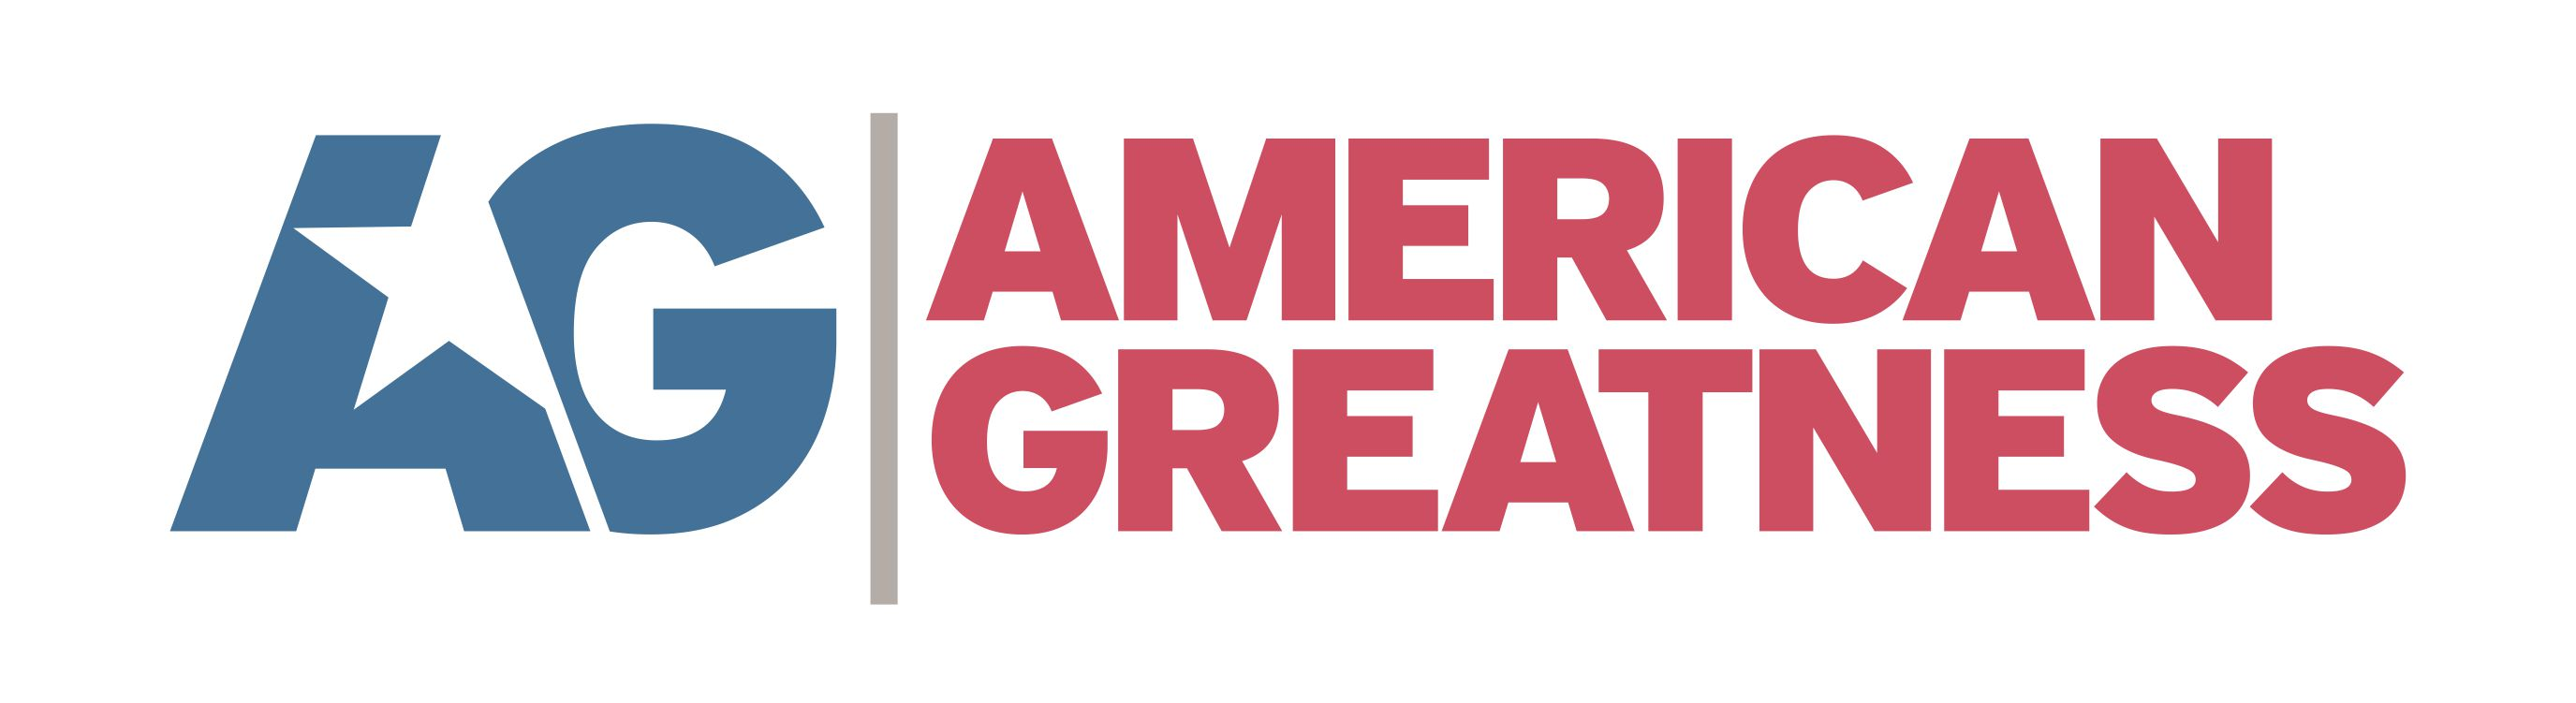 Image result for american greatness